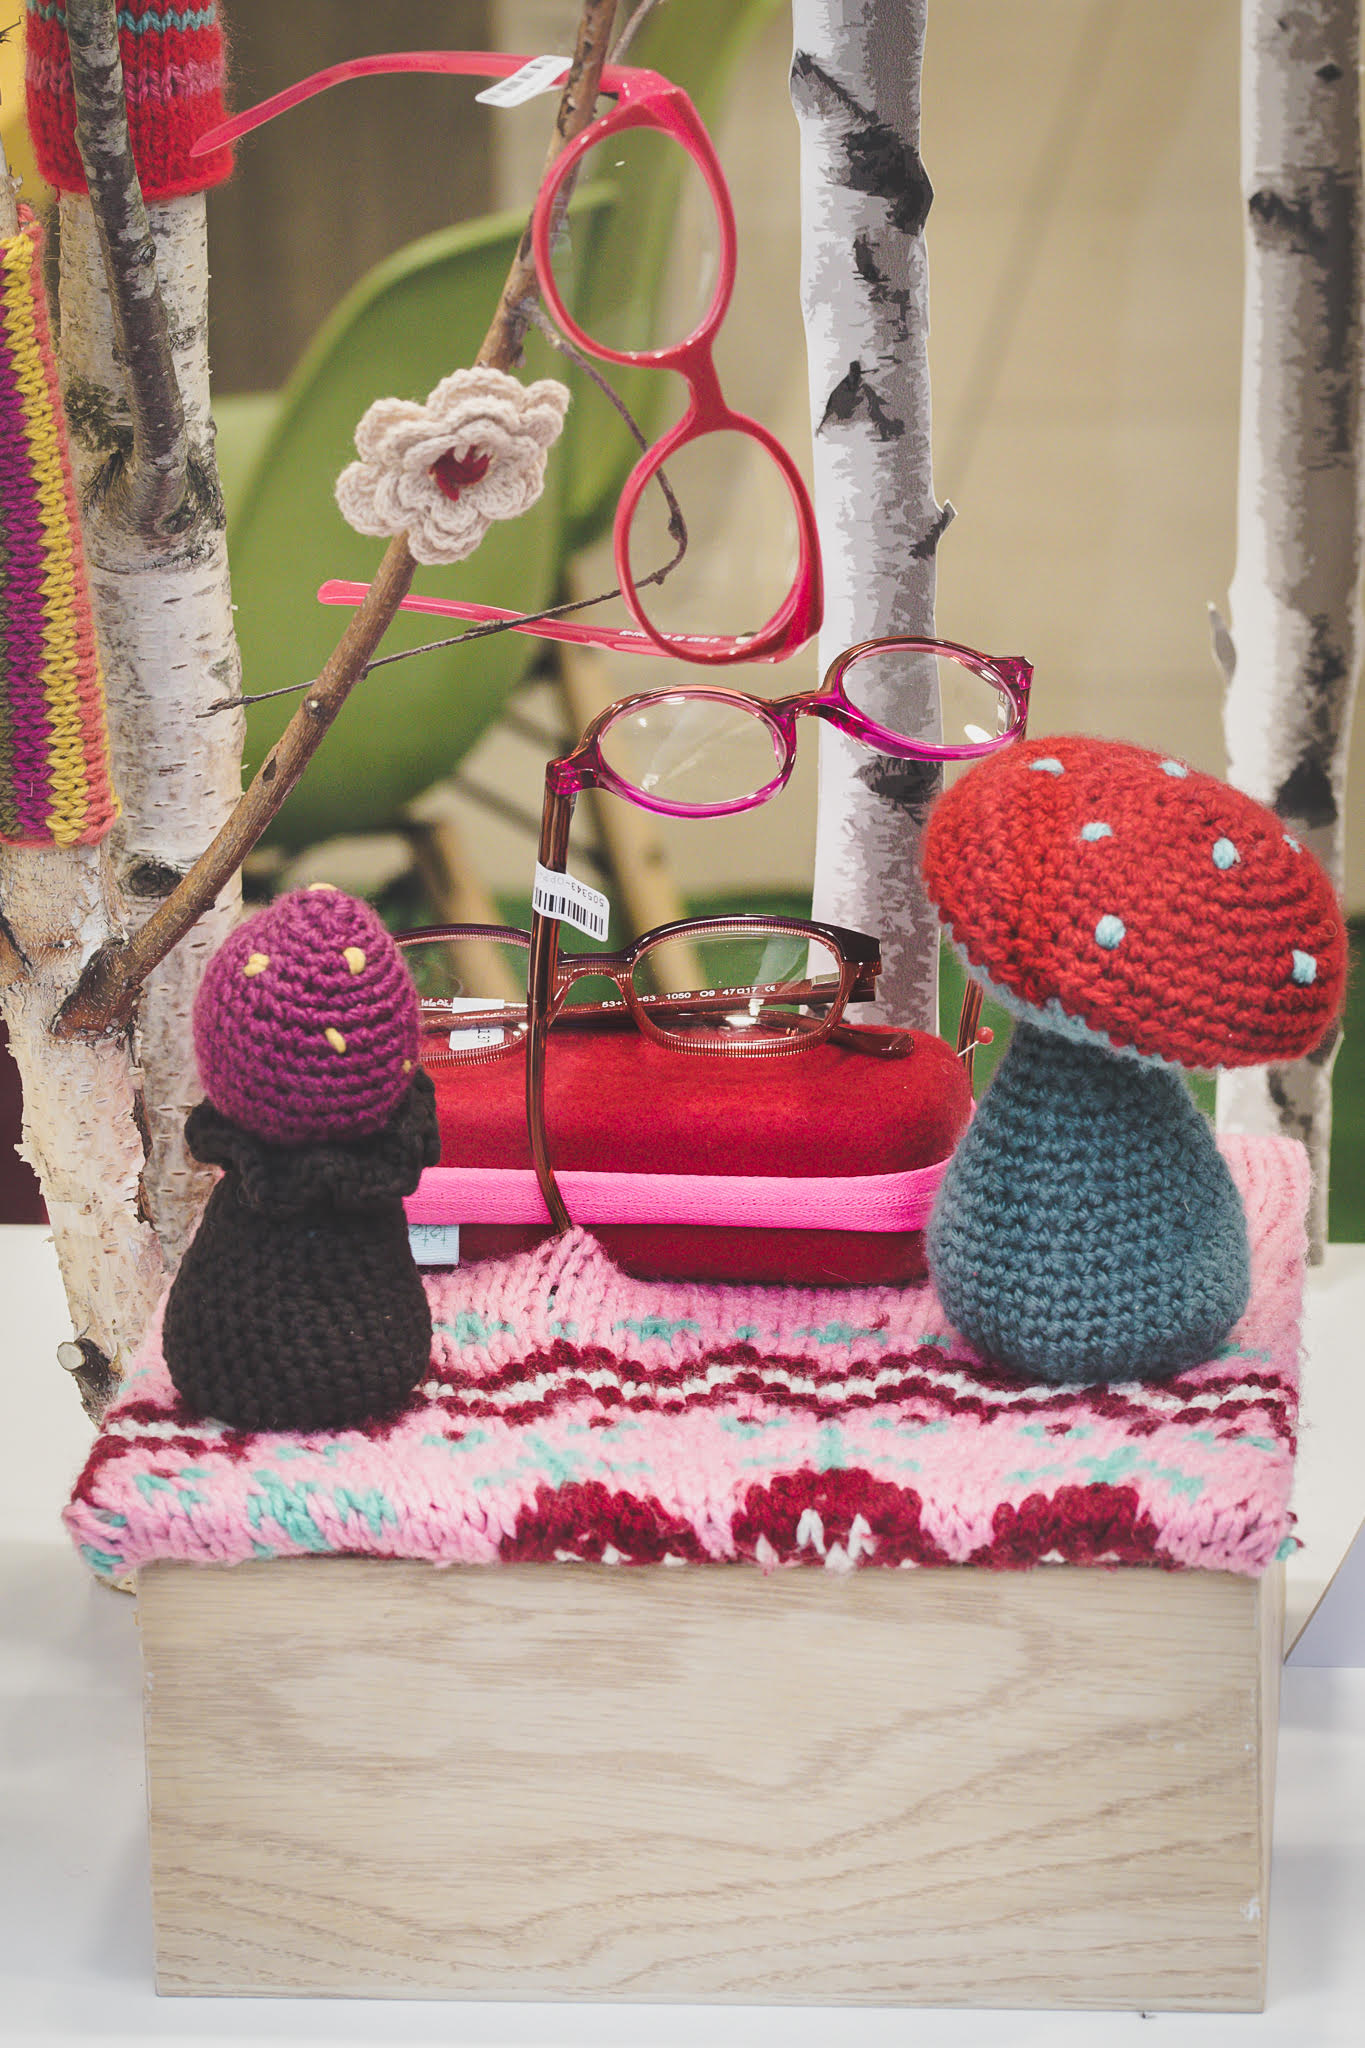 lunettes rose Yarn Bombing-la-decotheque-catherine-Cardin